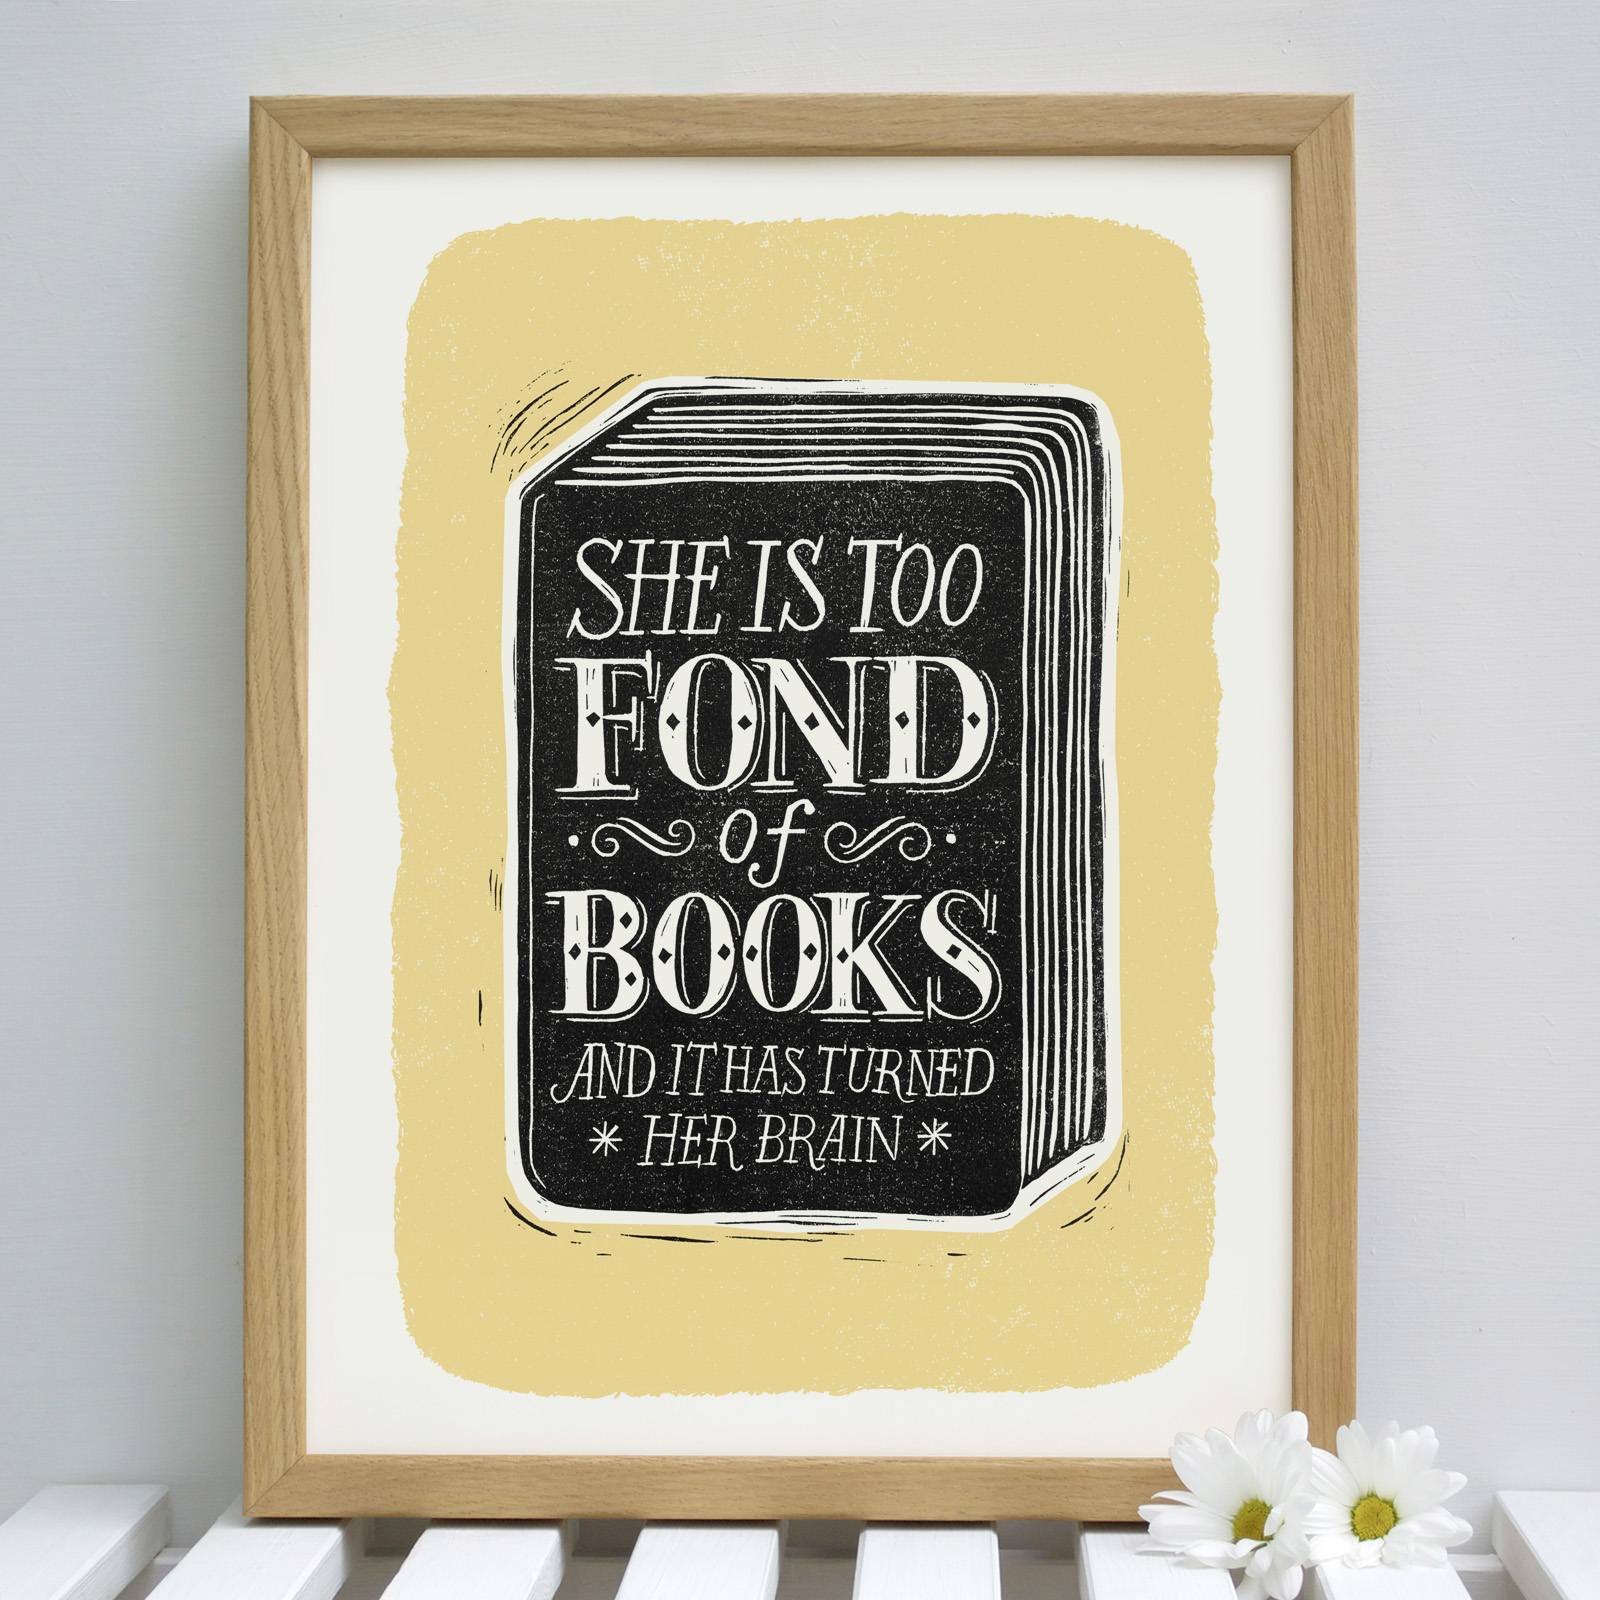 fond.of.books.yellow.framed - alexsnowdon@hotmail.com